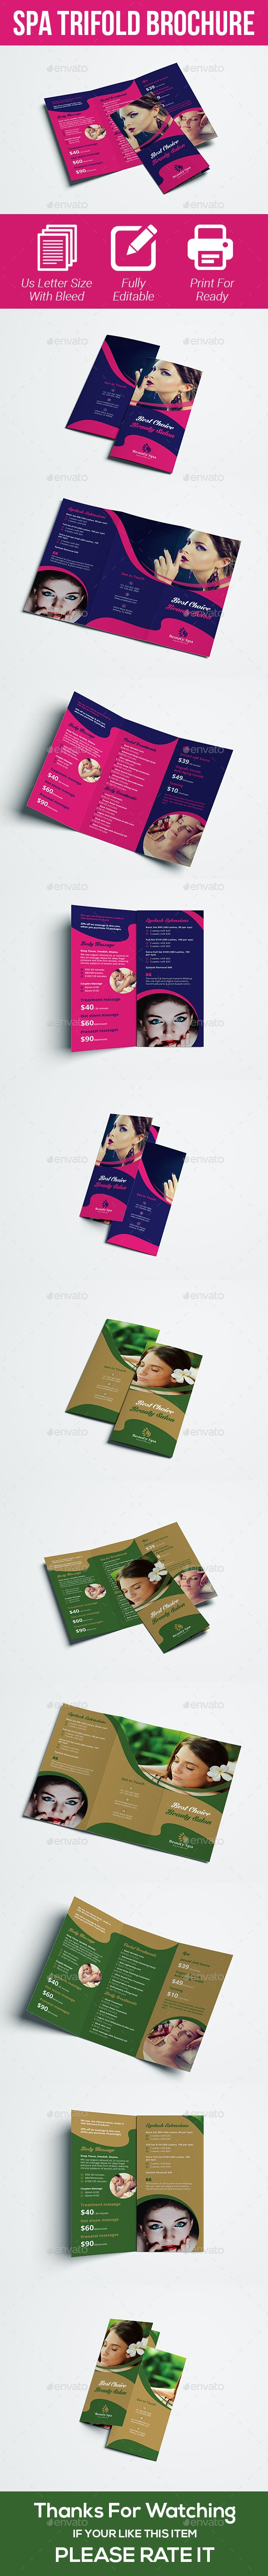 Spa Trifold Brochure Template - Brochures Print Templates